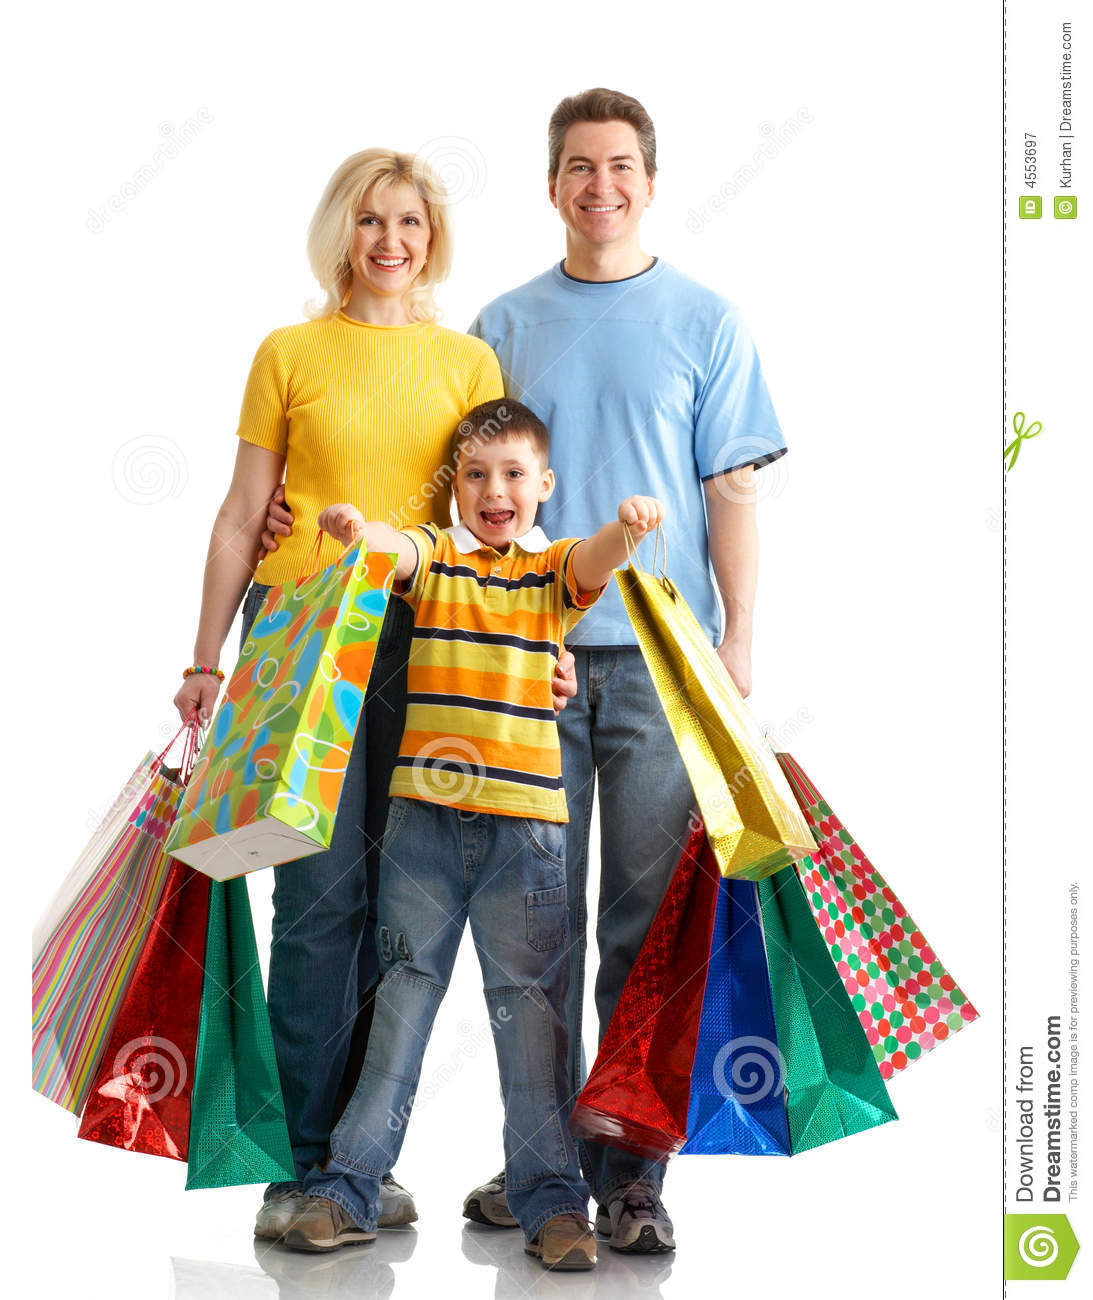 Household Stores: Family Shopping Royalty Free Stock Photography